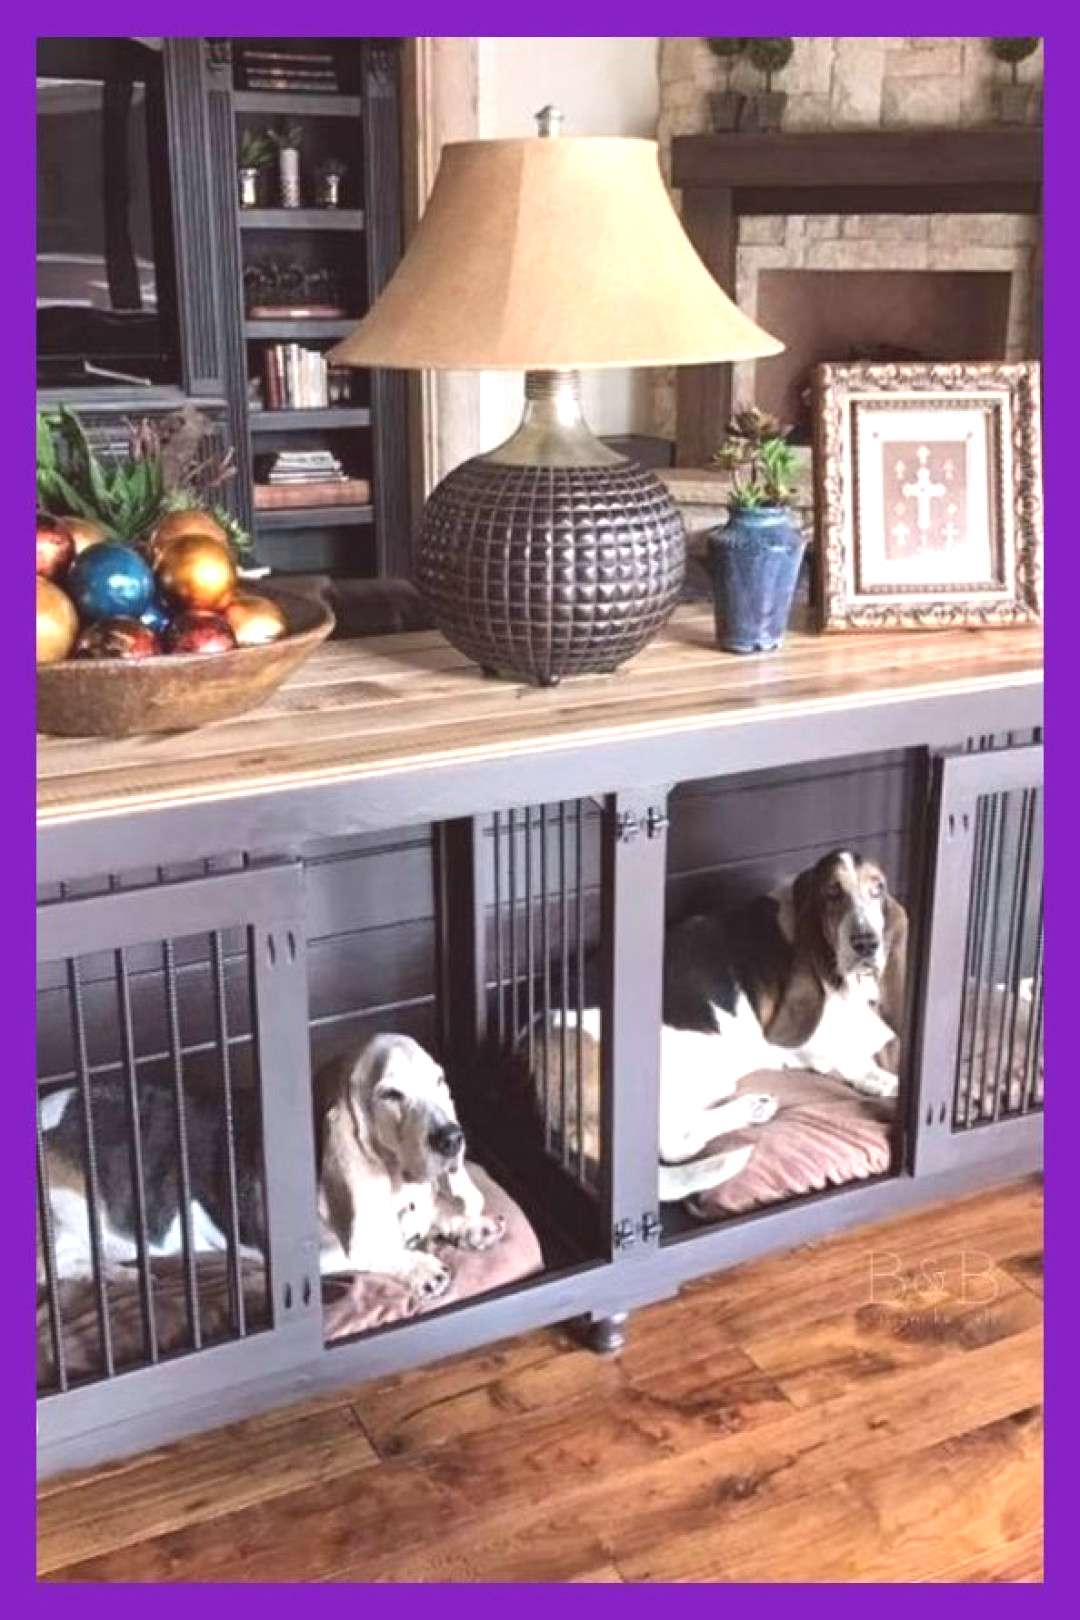 wooden-dog-kennels-built-for-one-and-two-dogs-for-indoor-use-check-out-our-designer-dog-crate... If